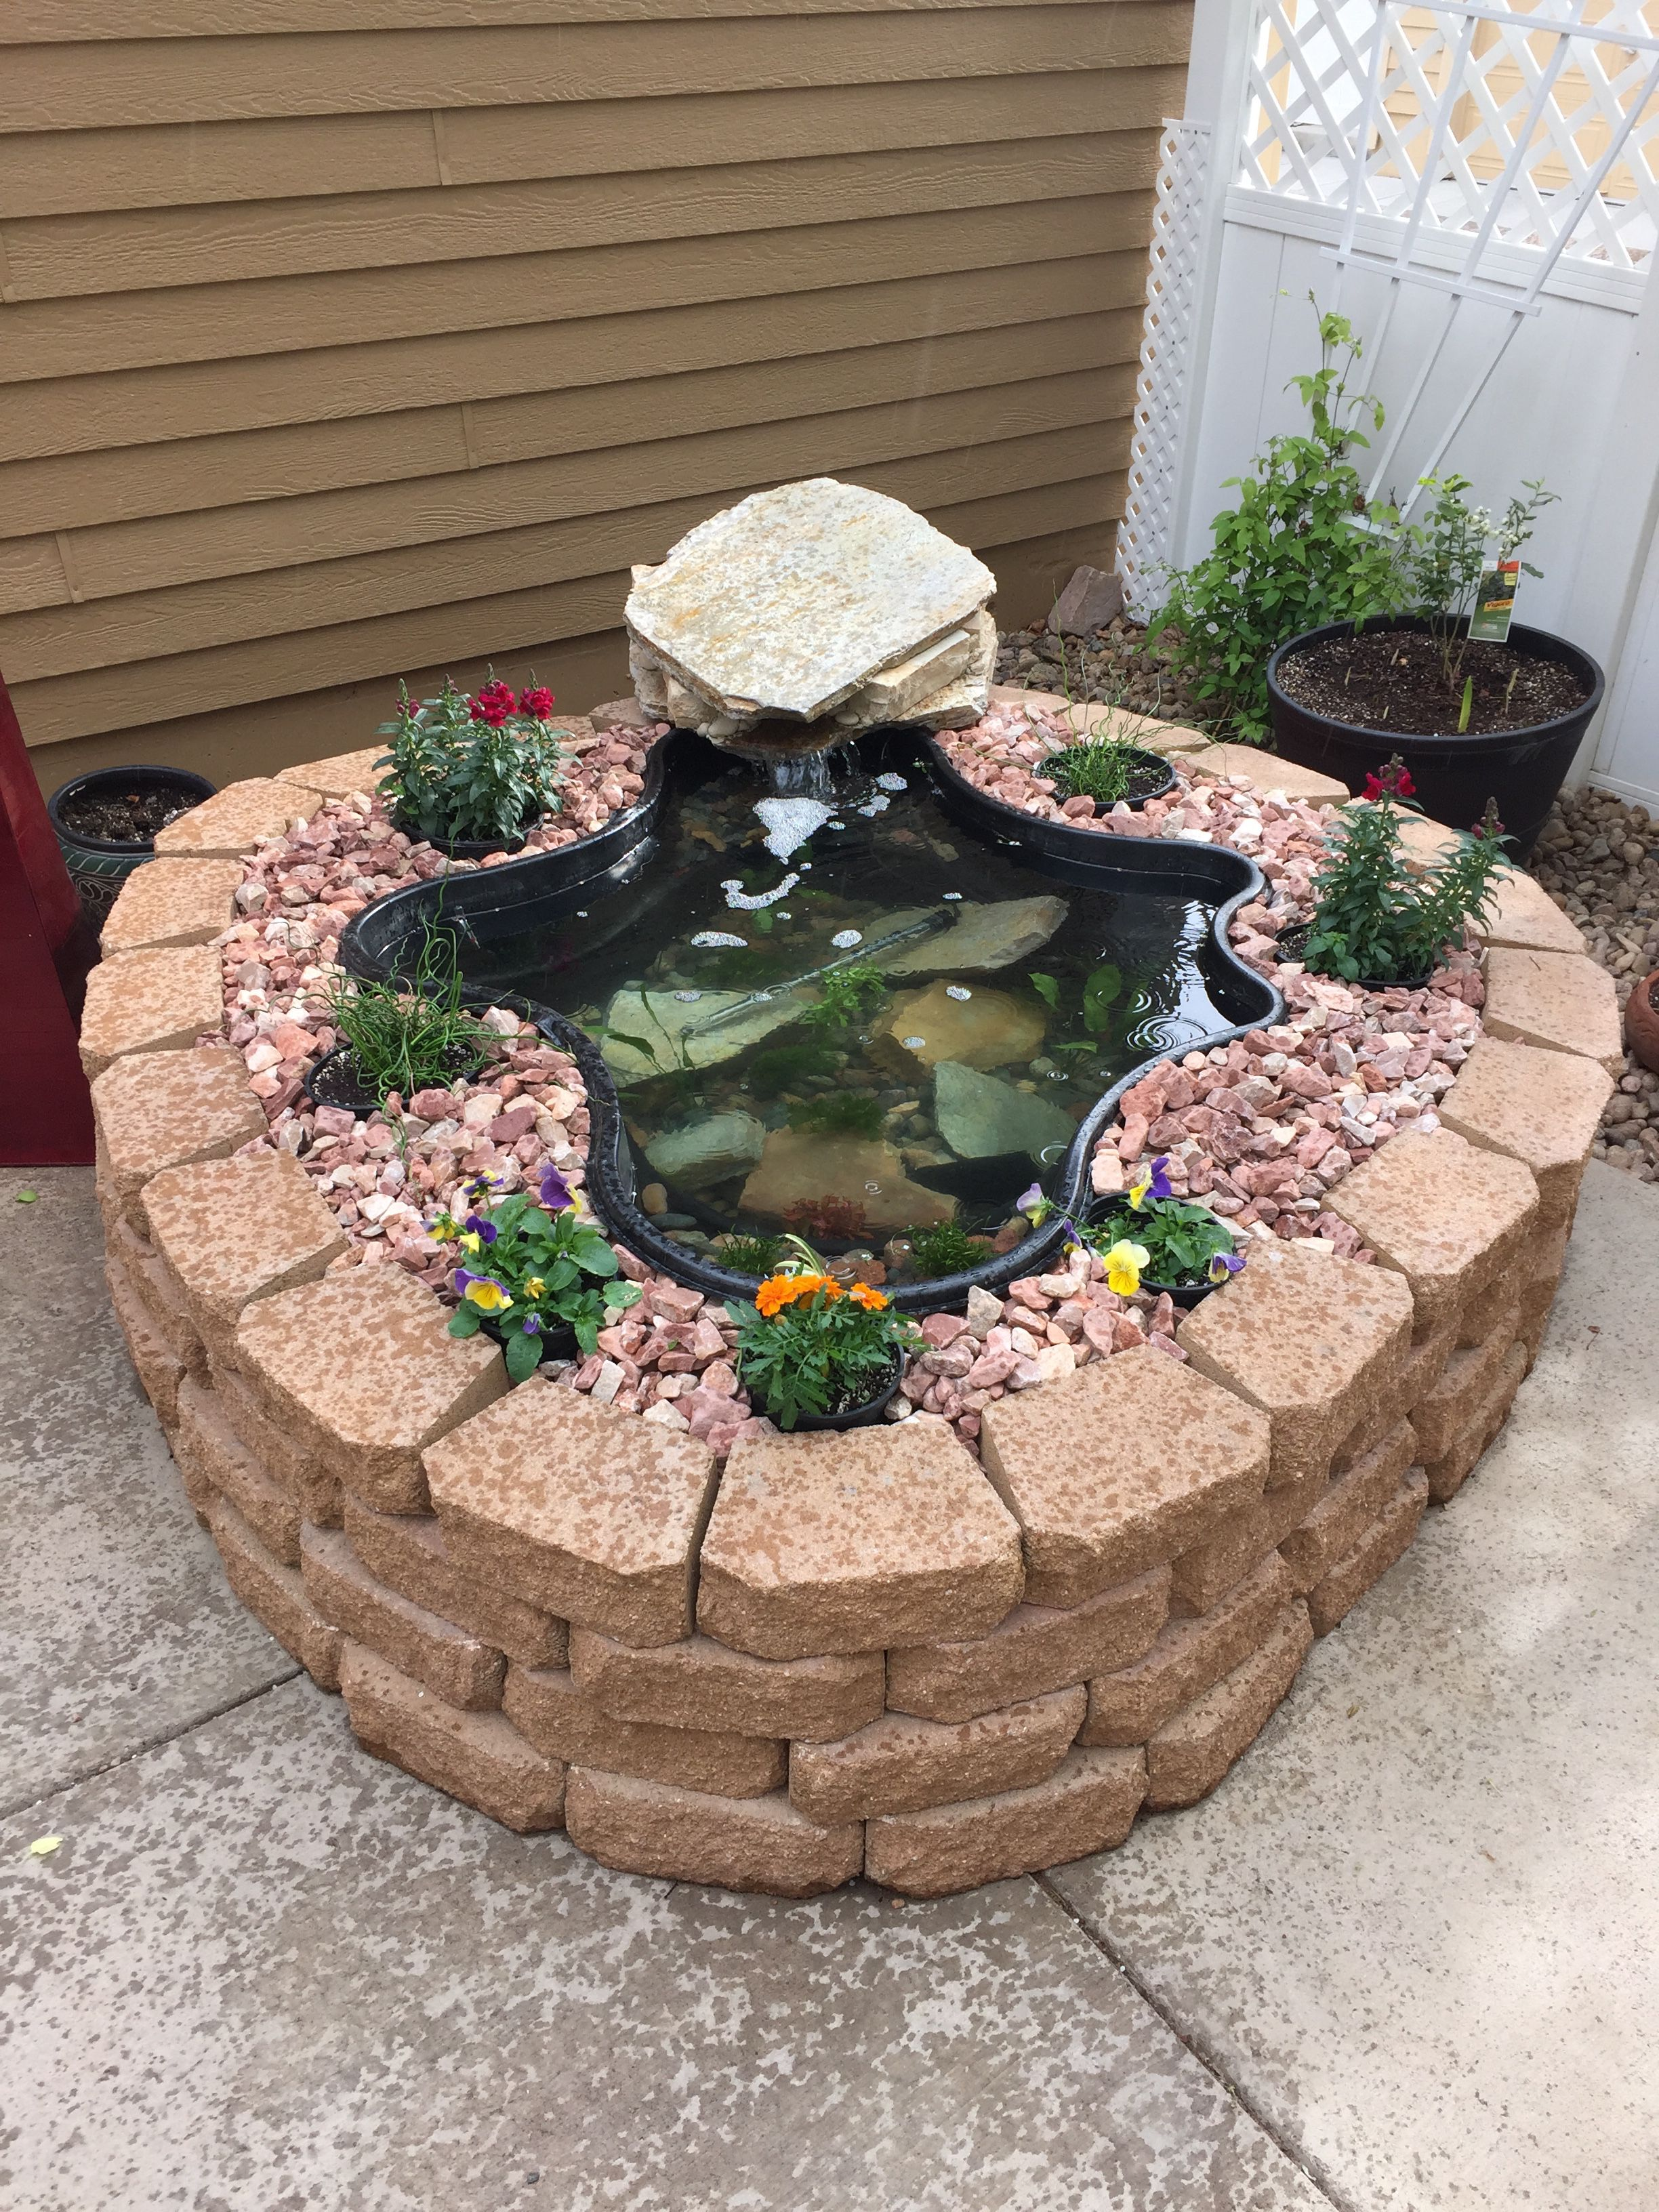 Above ground pond using garden wall blocks patio pond for Fish for small outdoor pond